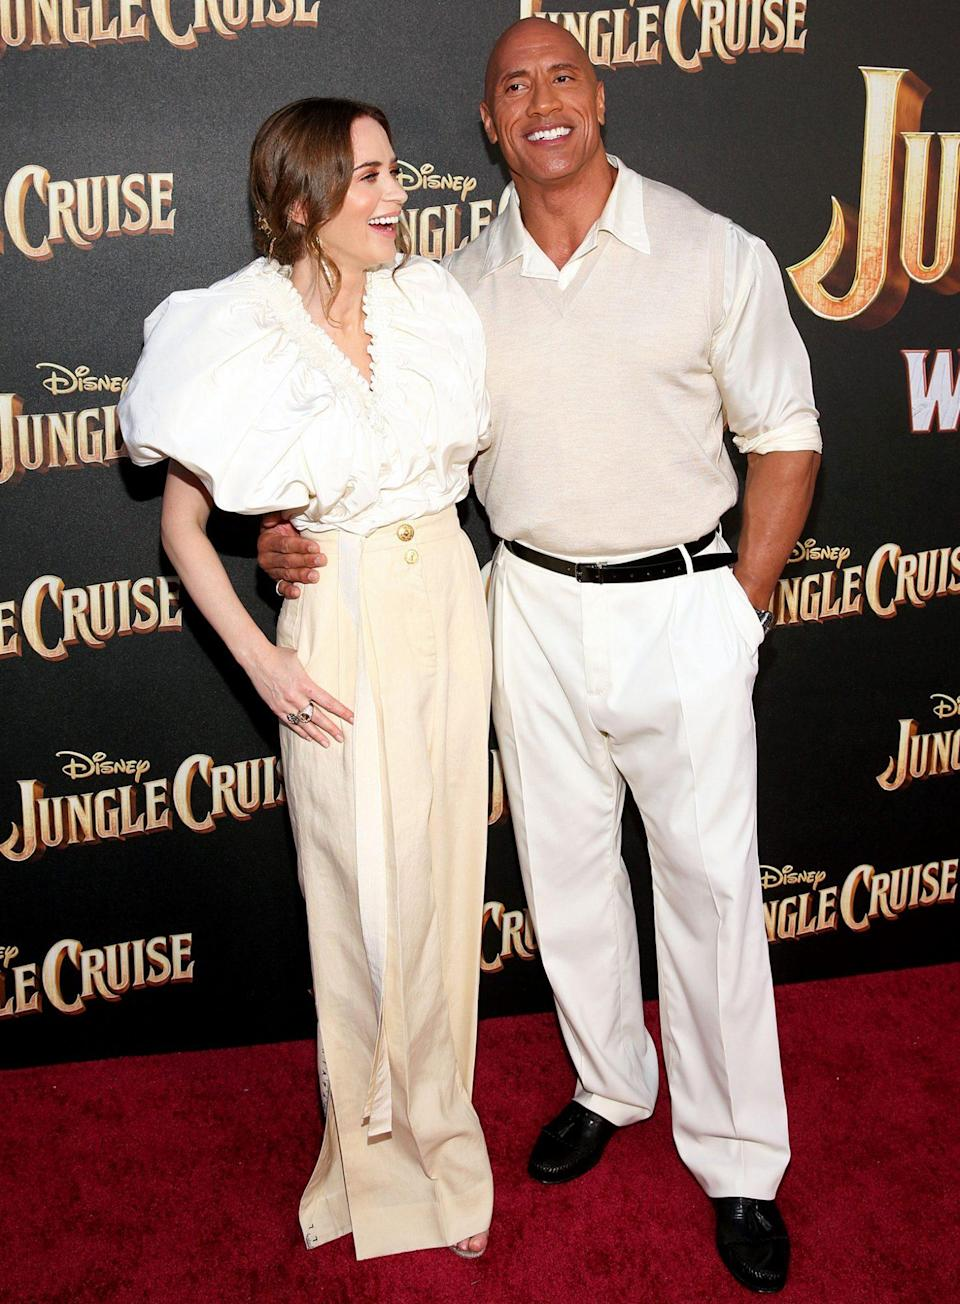 <p>Emily Blunt and Dwayne Johnson arrive in style at the world premiere of <em>Jungle Cruise</em> at Disneyland in Anaheim.</p>